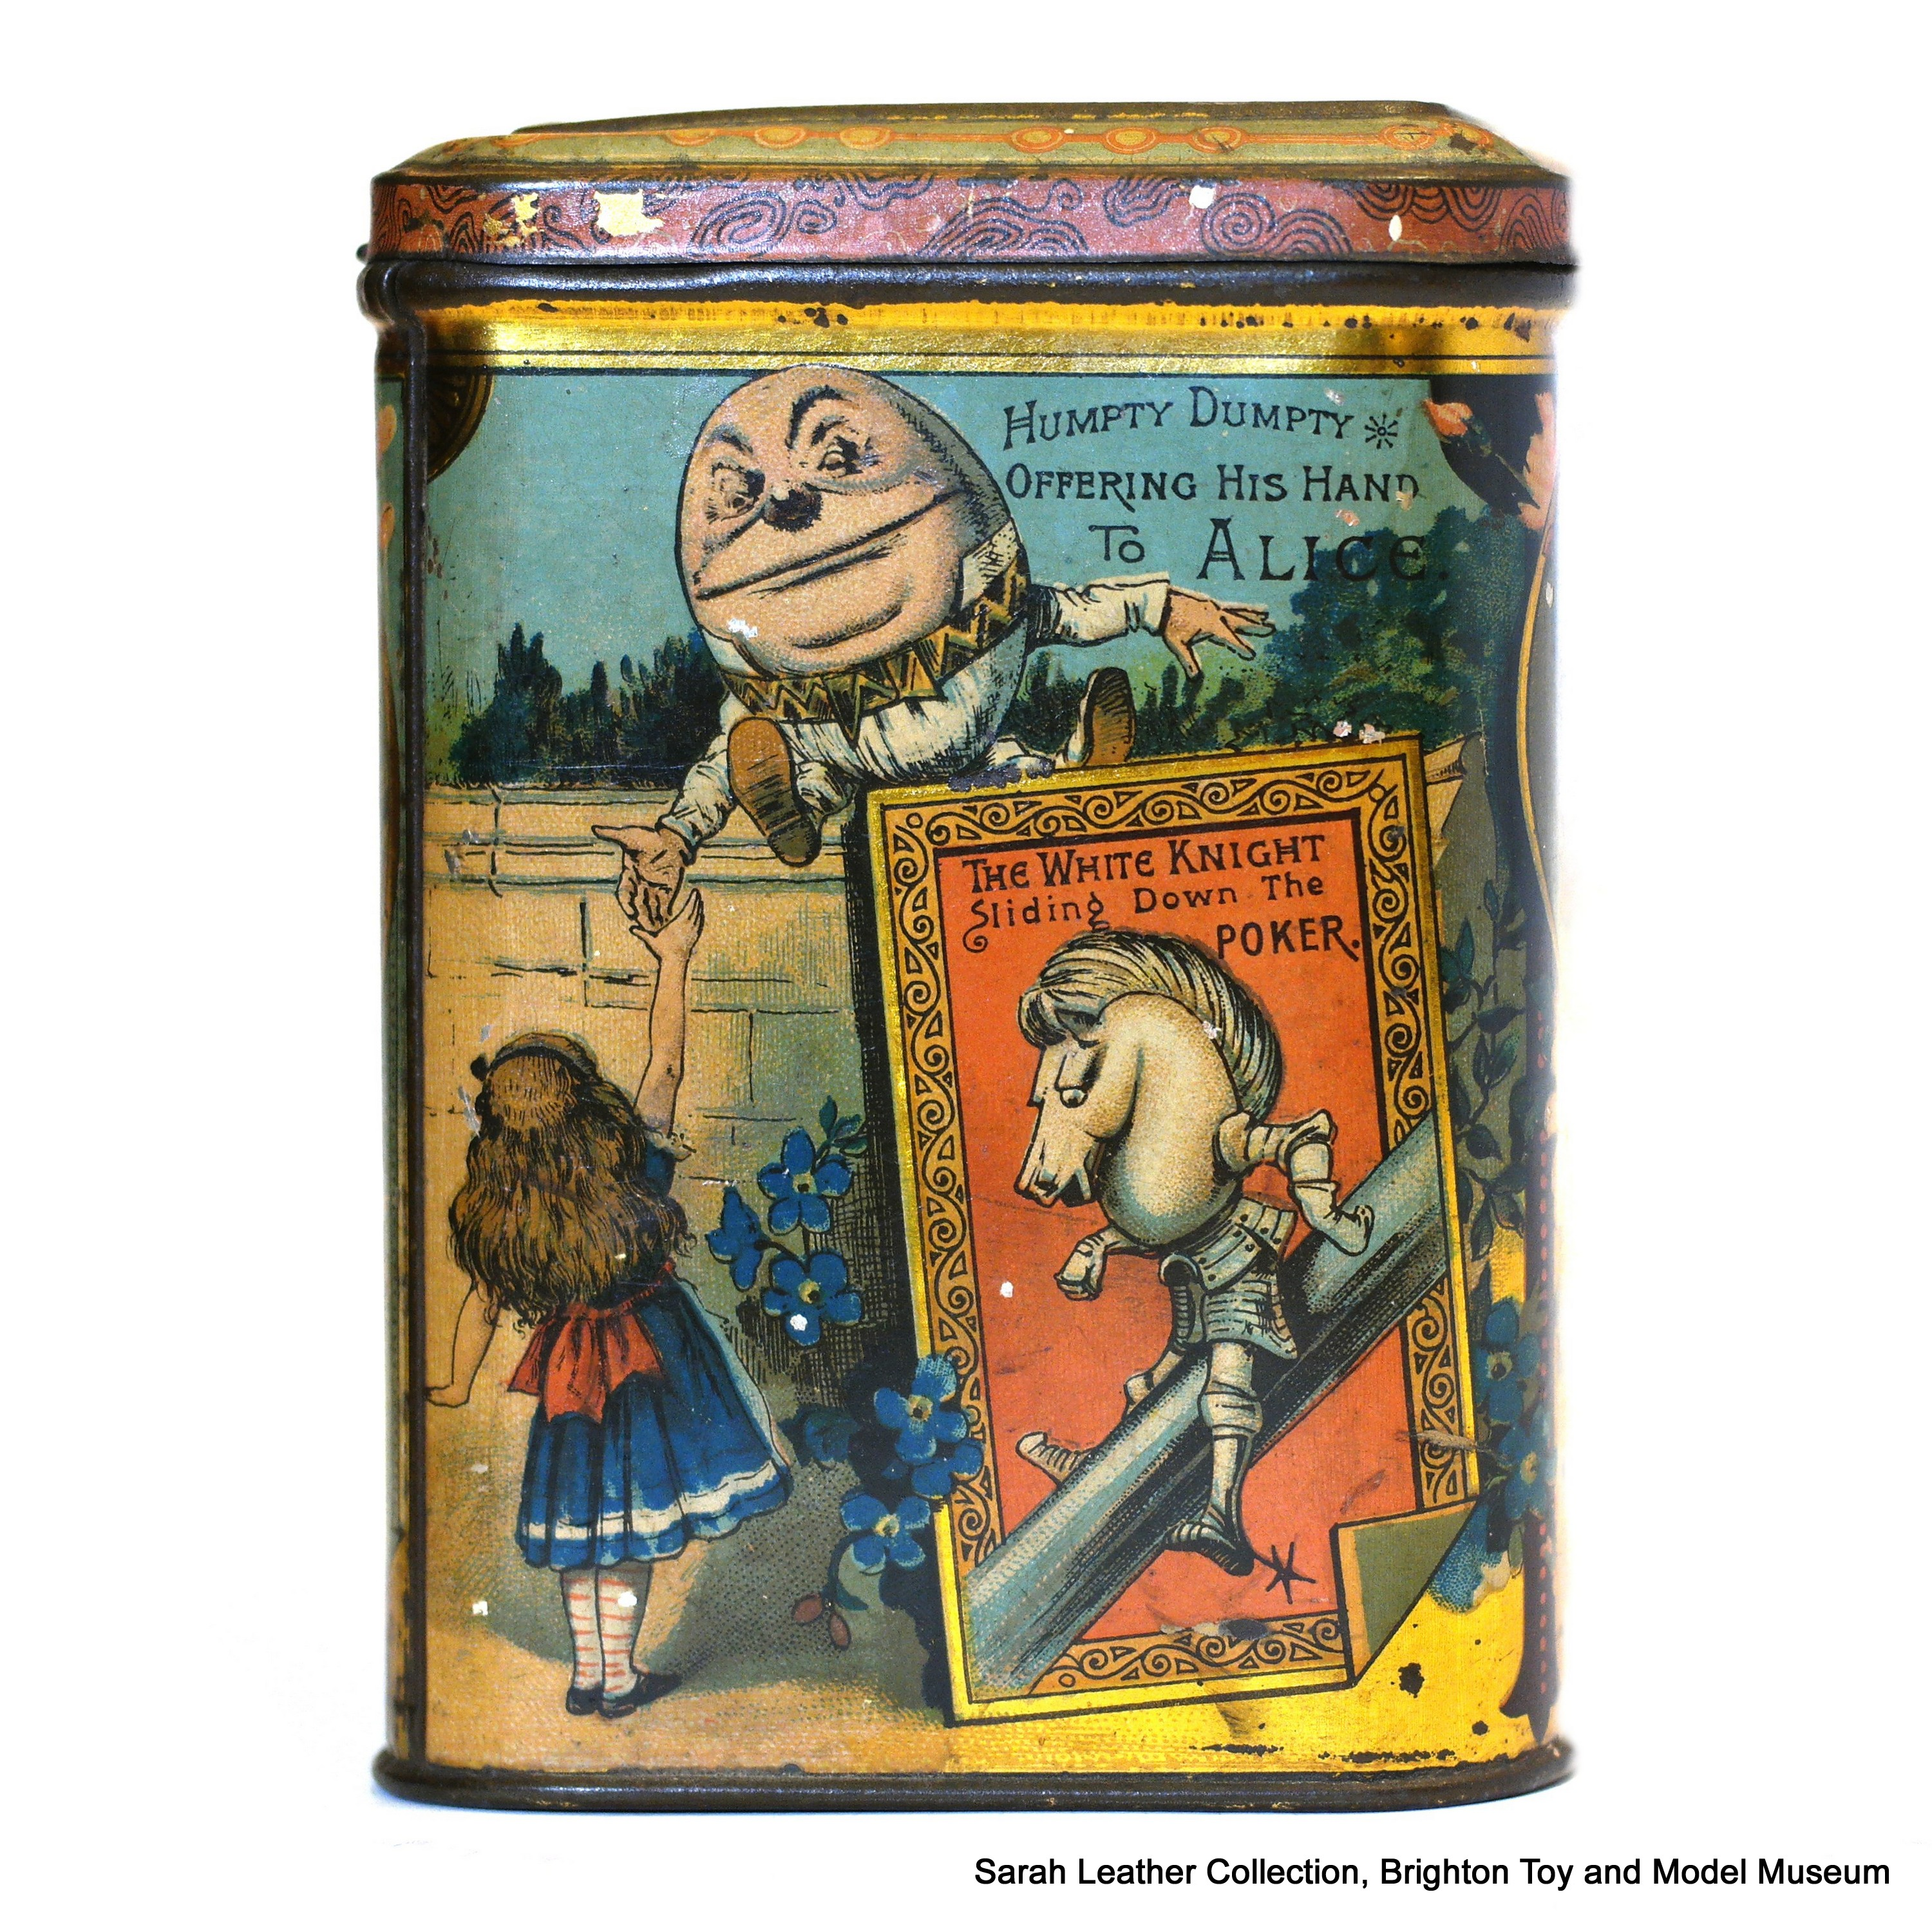 alice and humpty The rhyme was first printed in 1810 and became famous through lewis caroll's book, 'alice through the looking glass', where humpty dumpty is shown as a round egg however, it is a very old rhyme and goes back much earlier than this.